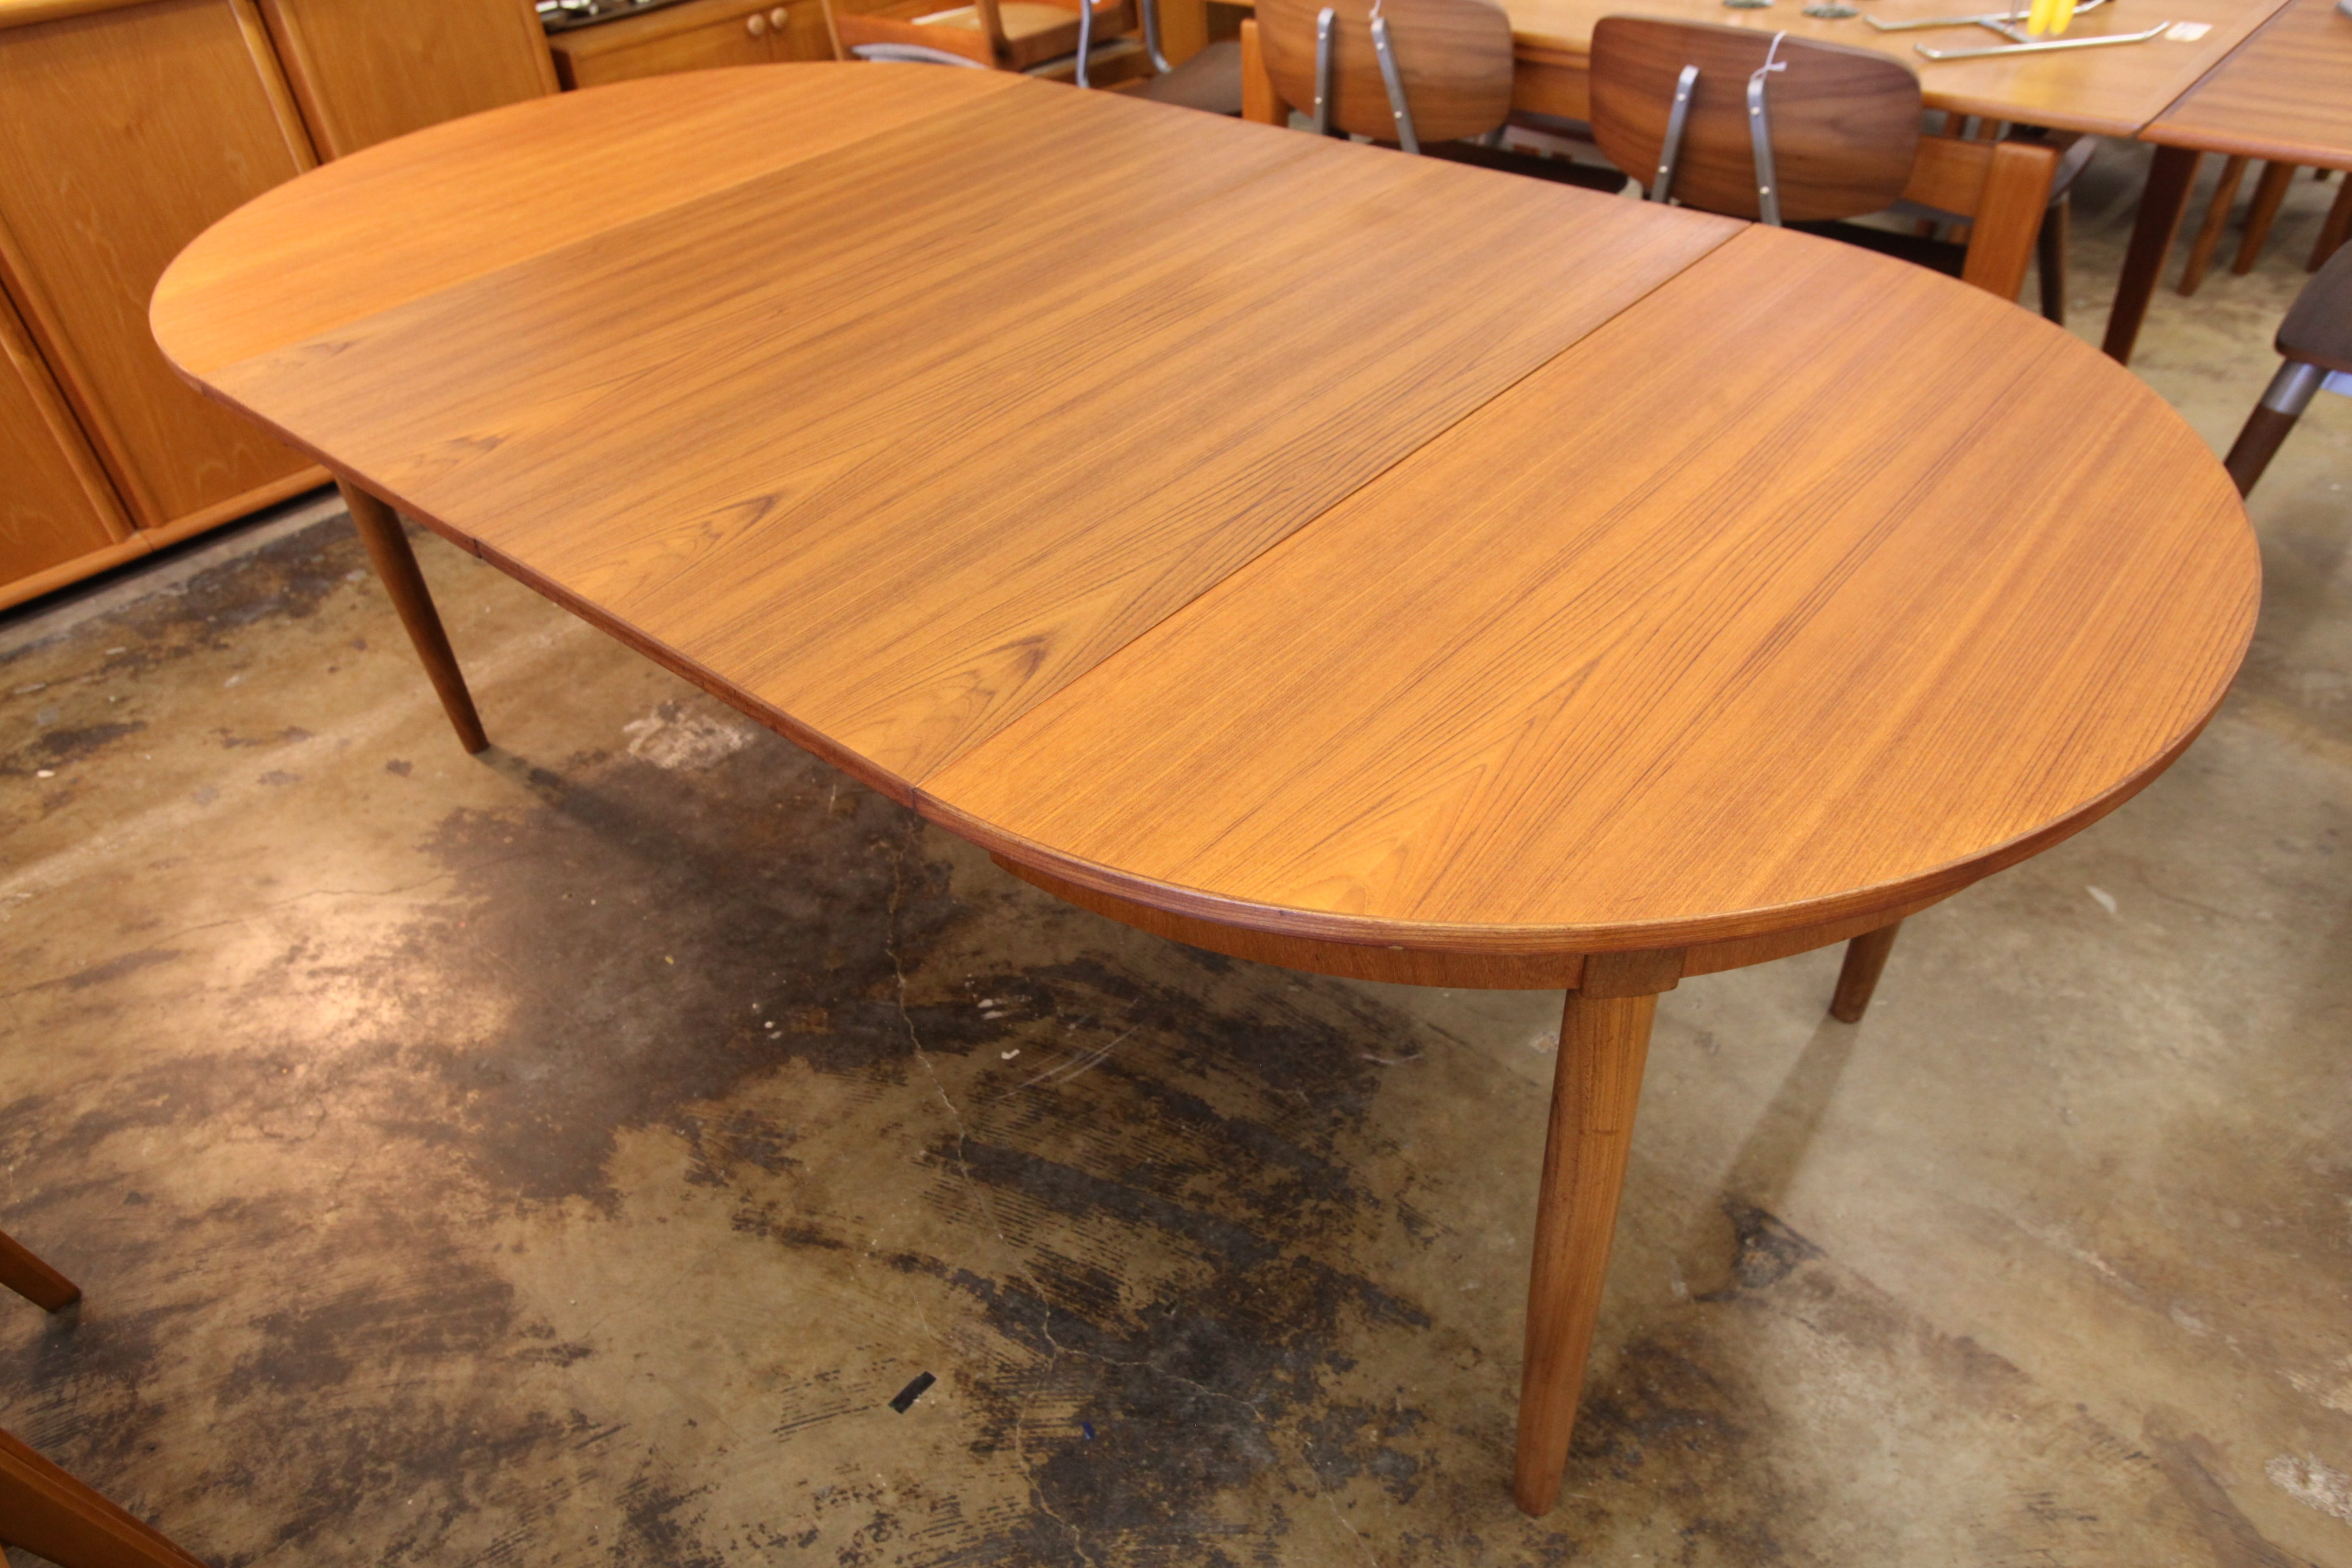 "Vintage Teak Dining Table W/ 2 Leafs (82""L x 43.25""W) or (43.25"" Dia Round)"